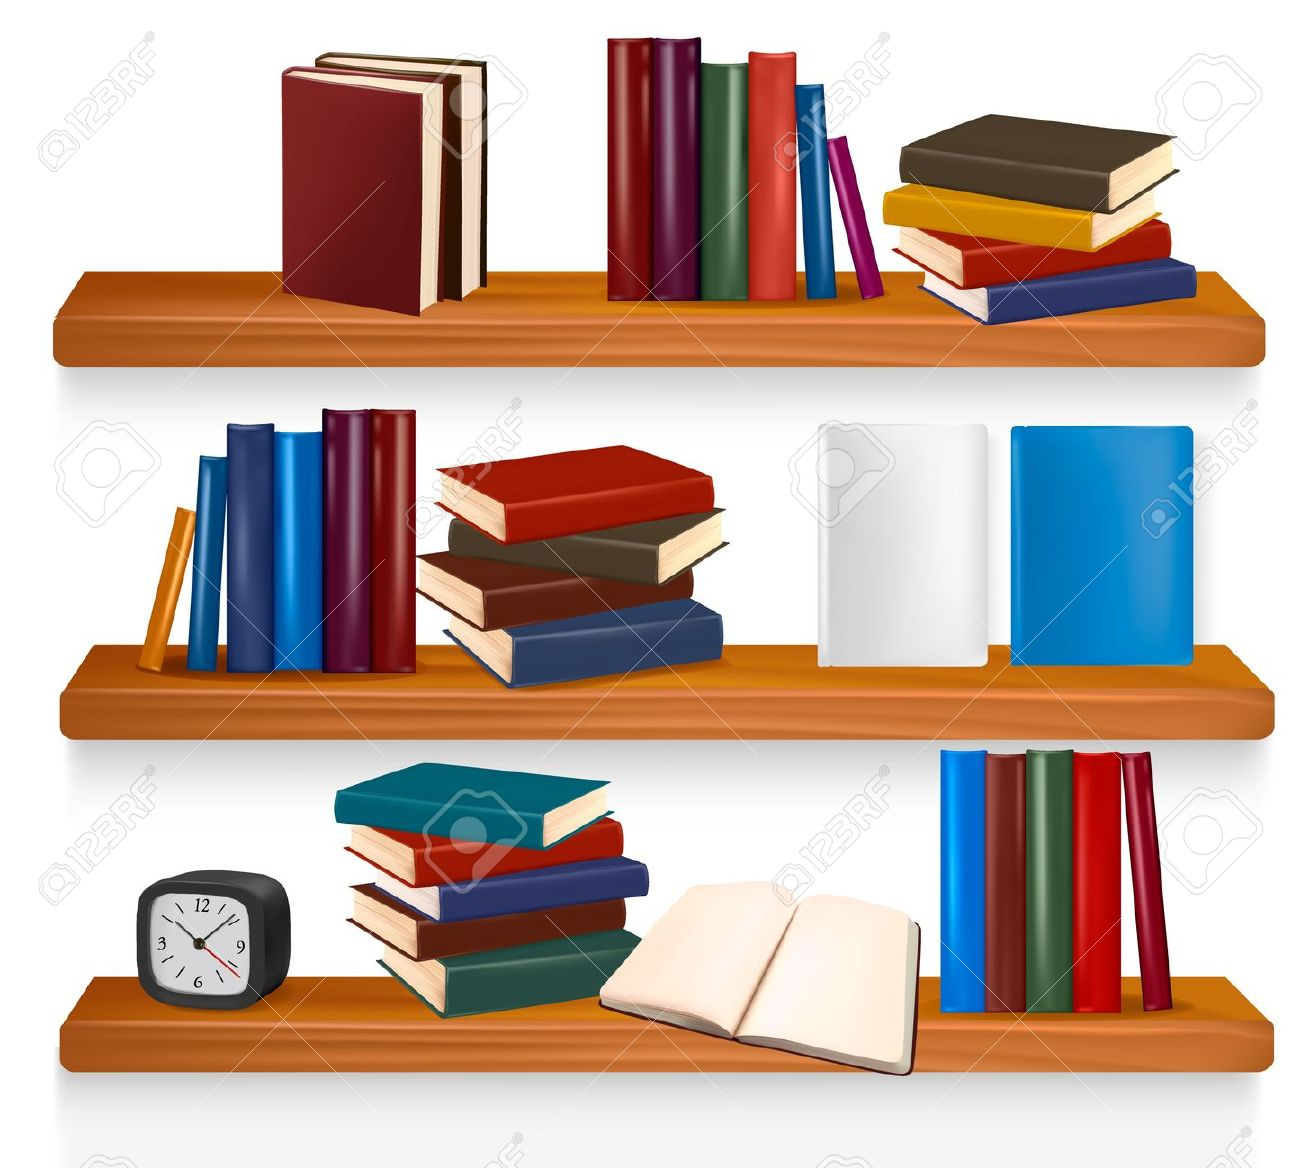 Bookshelf Clipart - More information